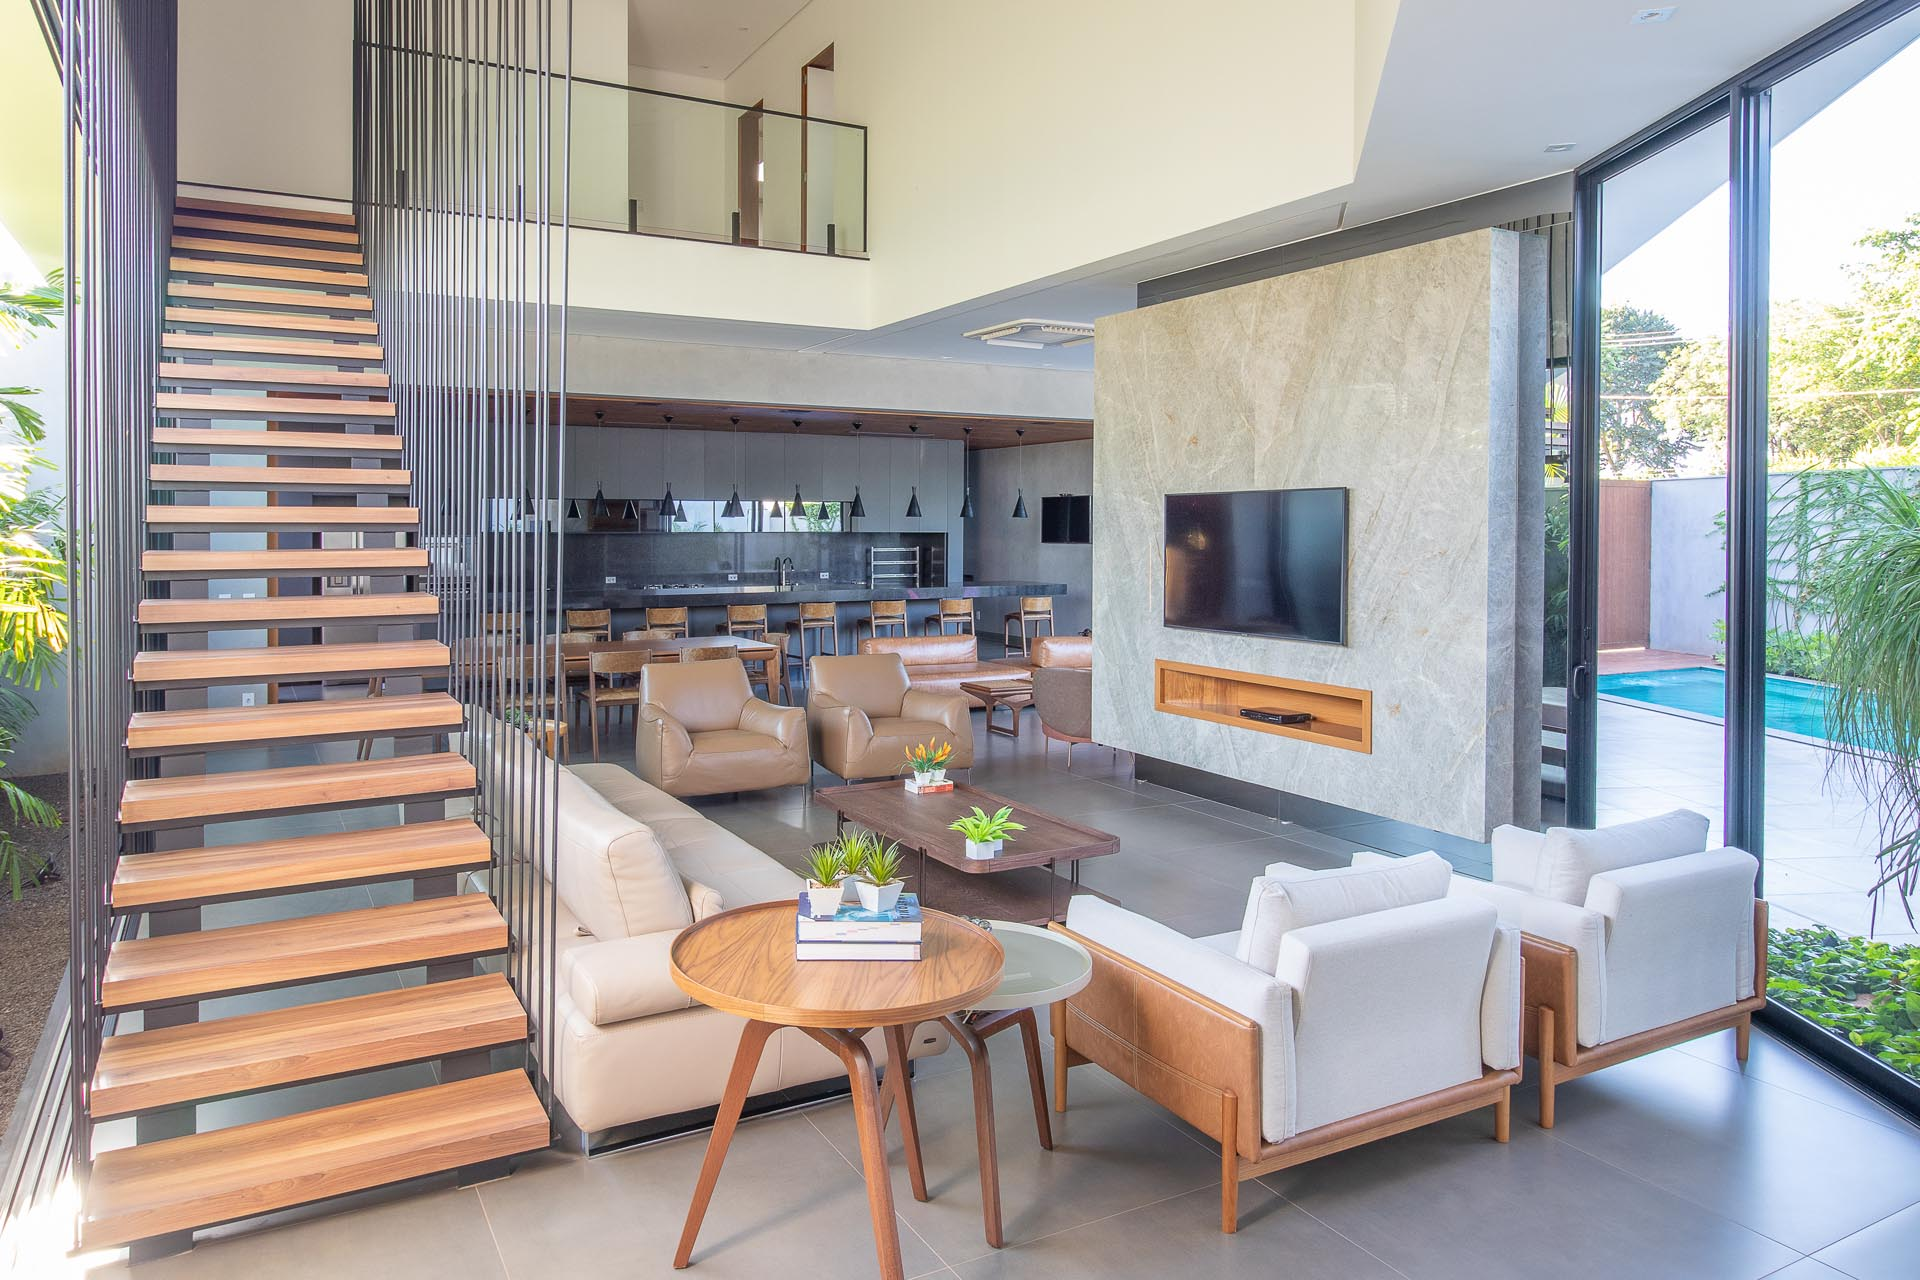 This mdoern living room is flooded with natural light from the oversized windows and sliding doors, while the stairs draw attention to the double height ceiling.